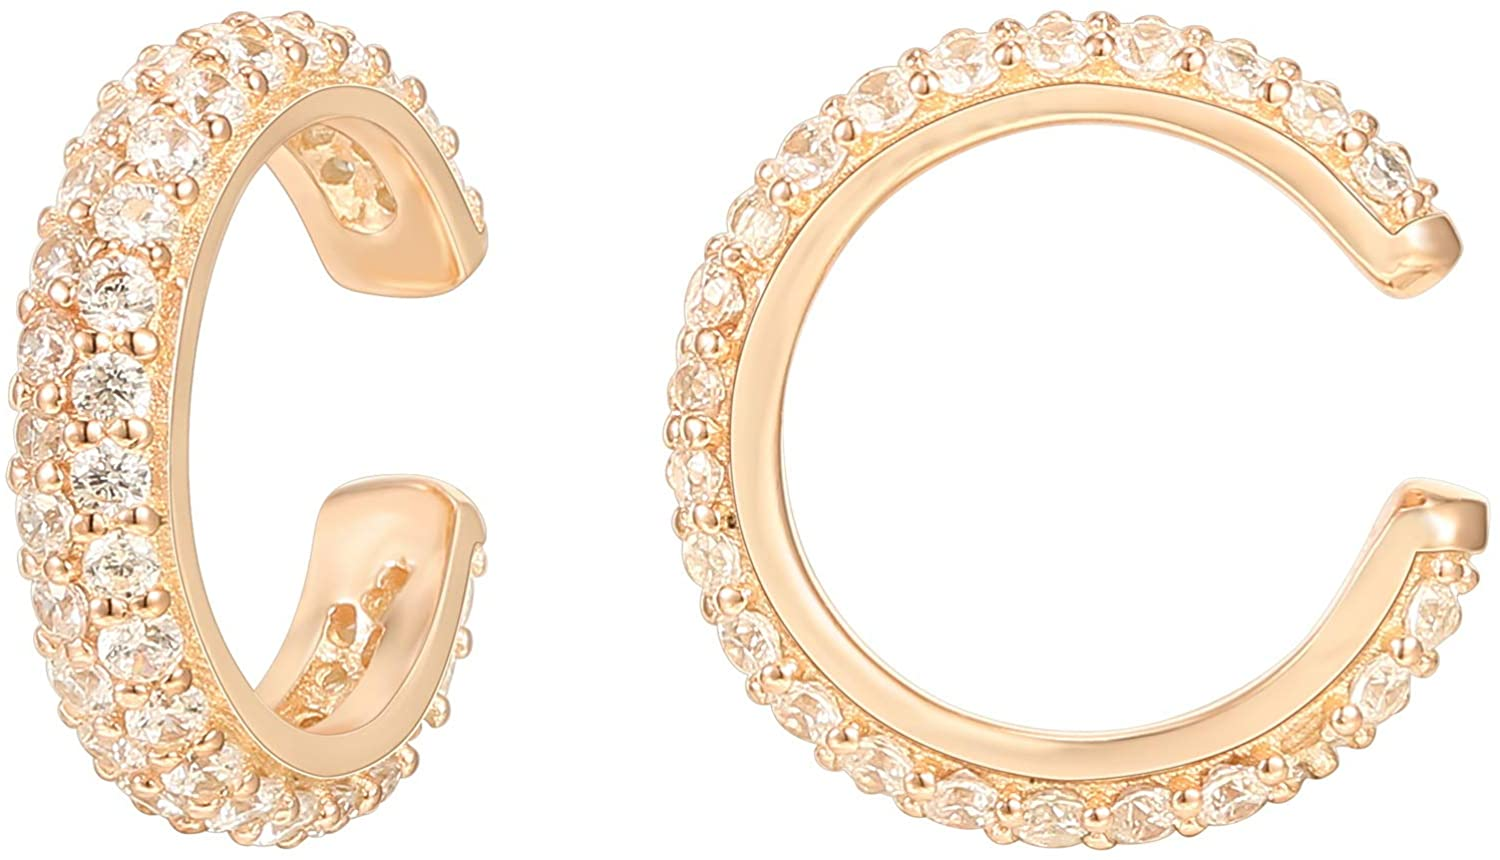 PAVOI 14K Gold Plated 925 Sterling Silver 1.3mm Staggered Cubic Zirconia Sparkling Round Huggie Ear Cuff Gold Earrings for Women | Clip On Cartilage